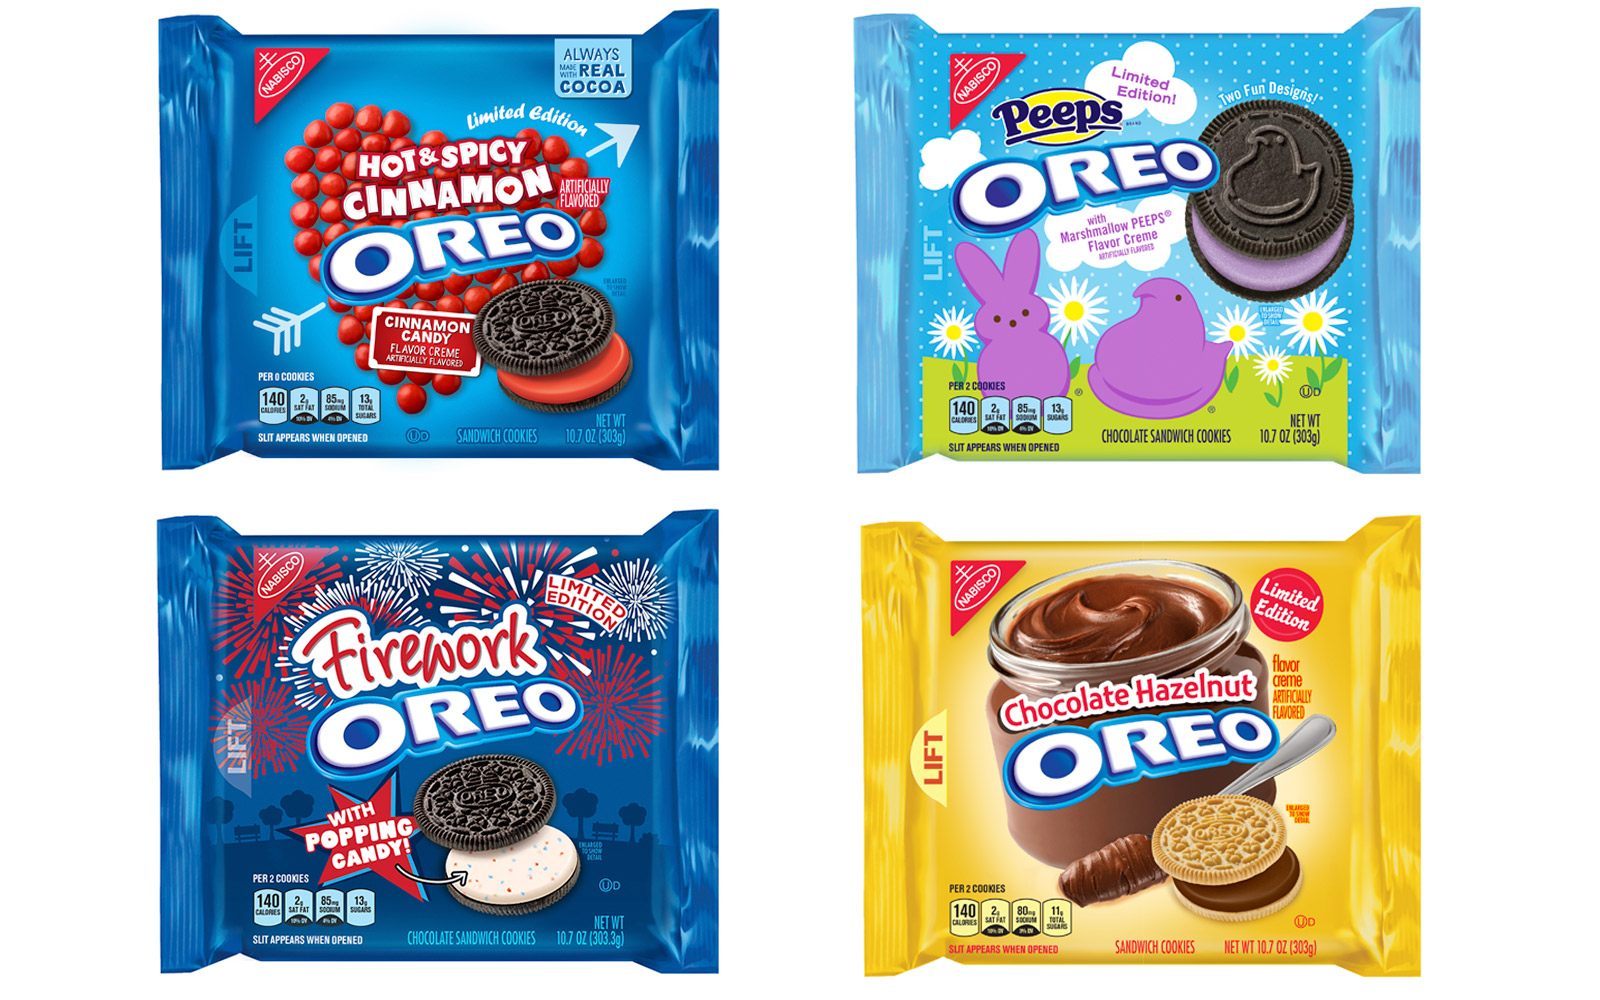 New Oreo flavors for 2018